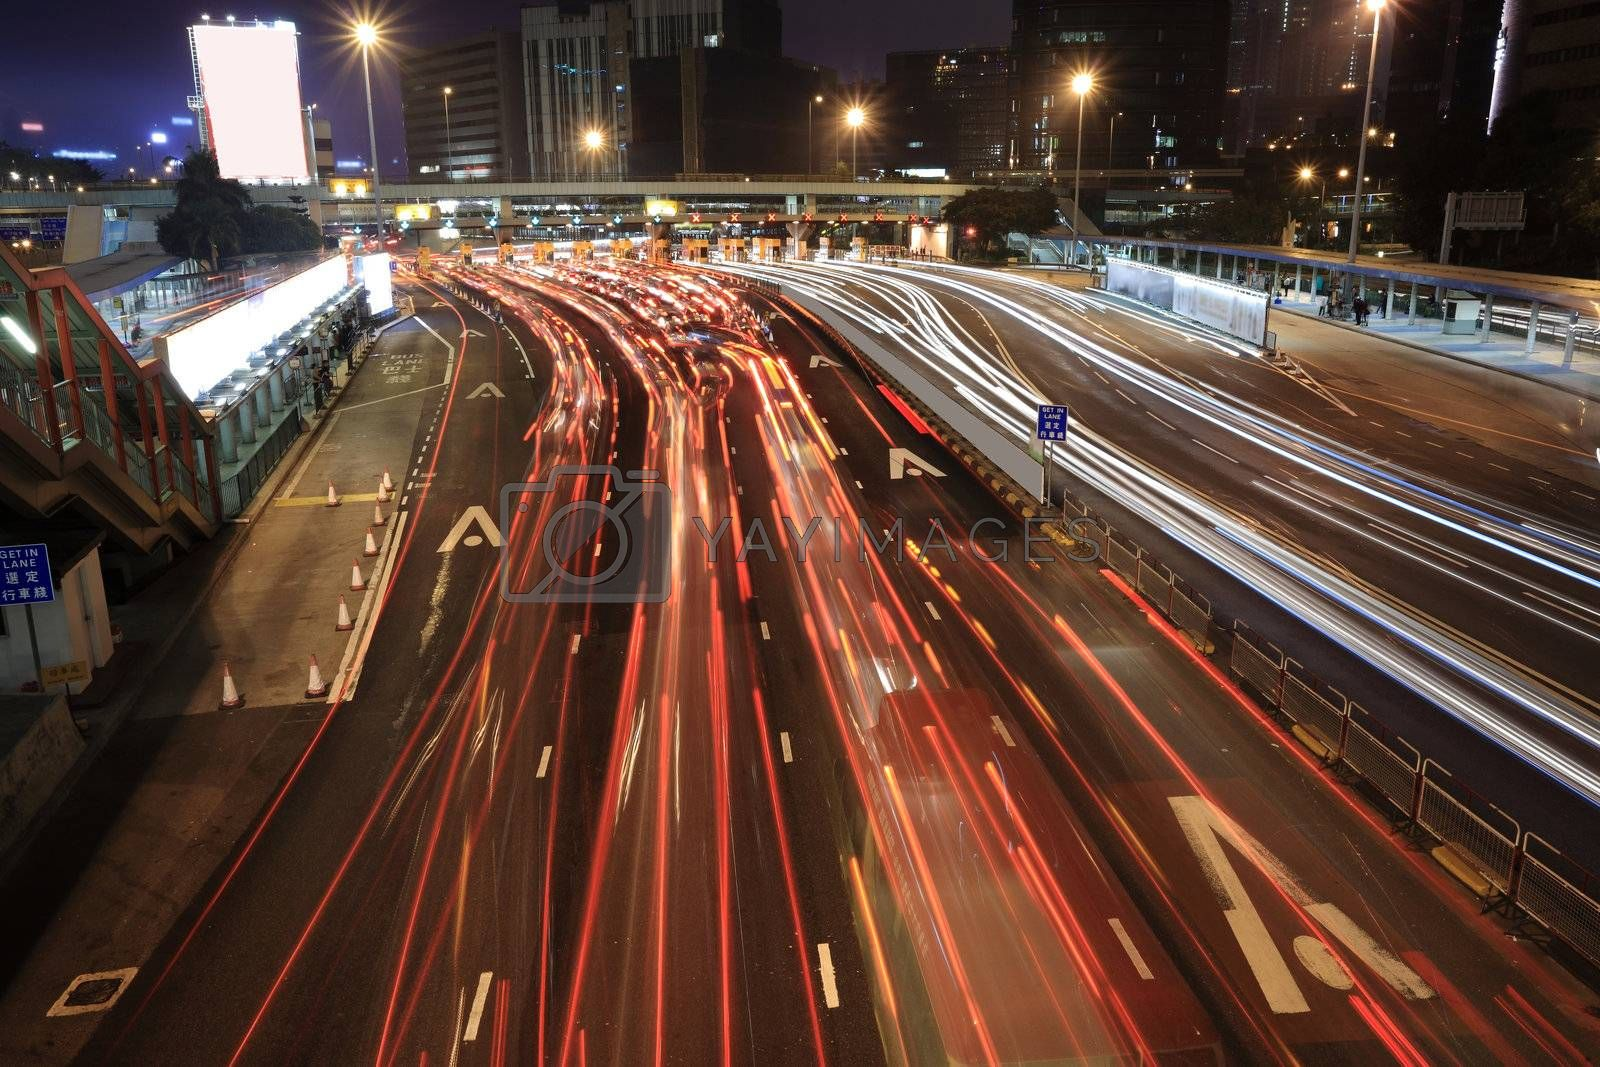 Traffic jam in Hong Kong at night by leungchopan